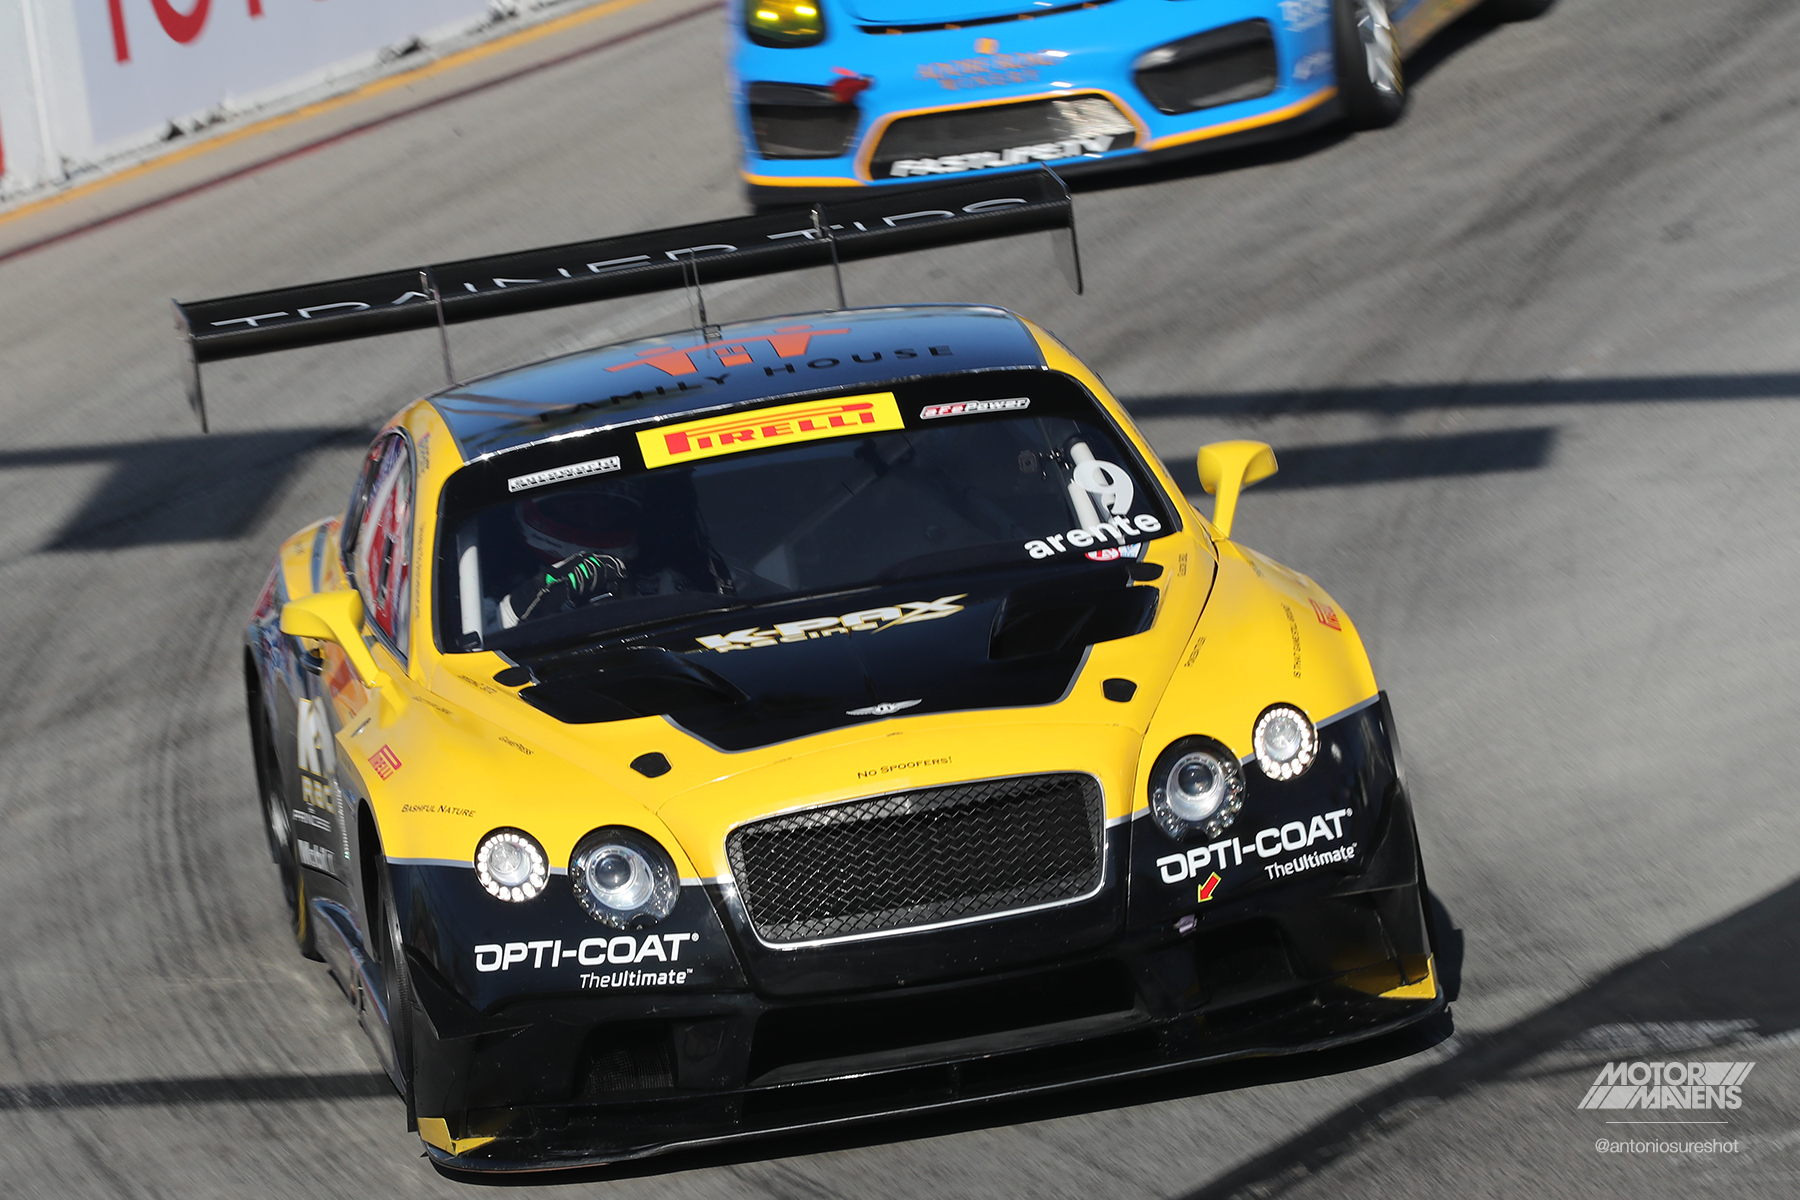 Bentley Continental GT3, Pirelli World Challenge, Pirelli, Long Beach Grand Prix, Bentley Continental, Continental GT3, KPAX, K-PAX, Opticoat, Brembo